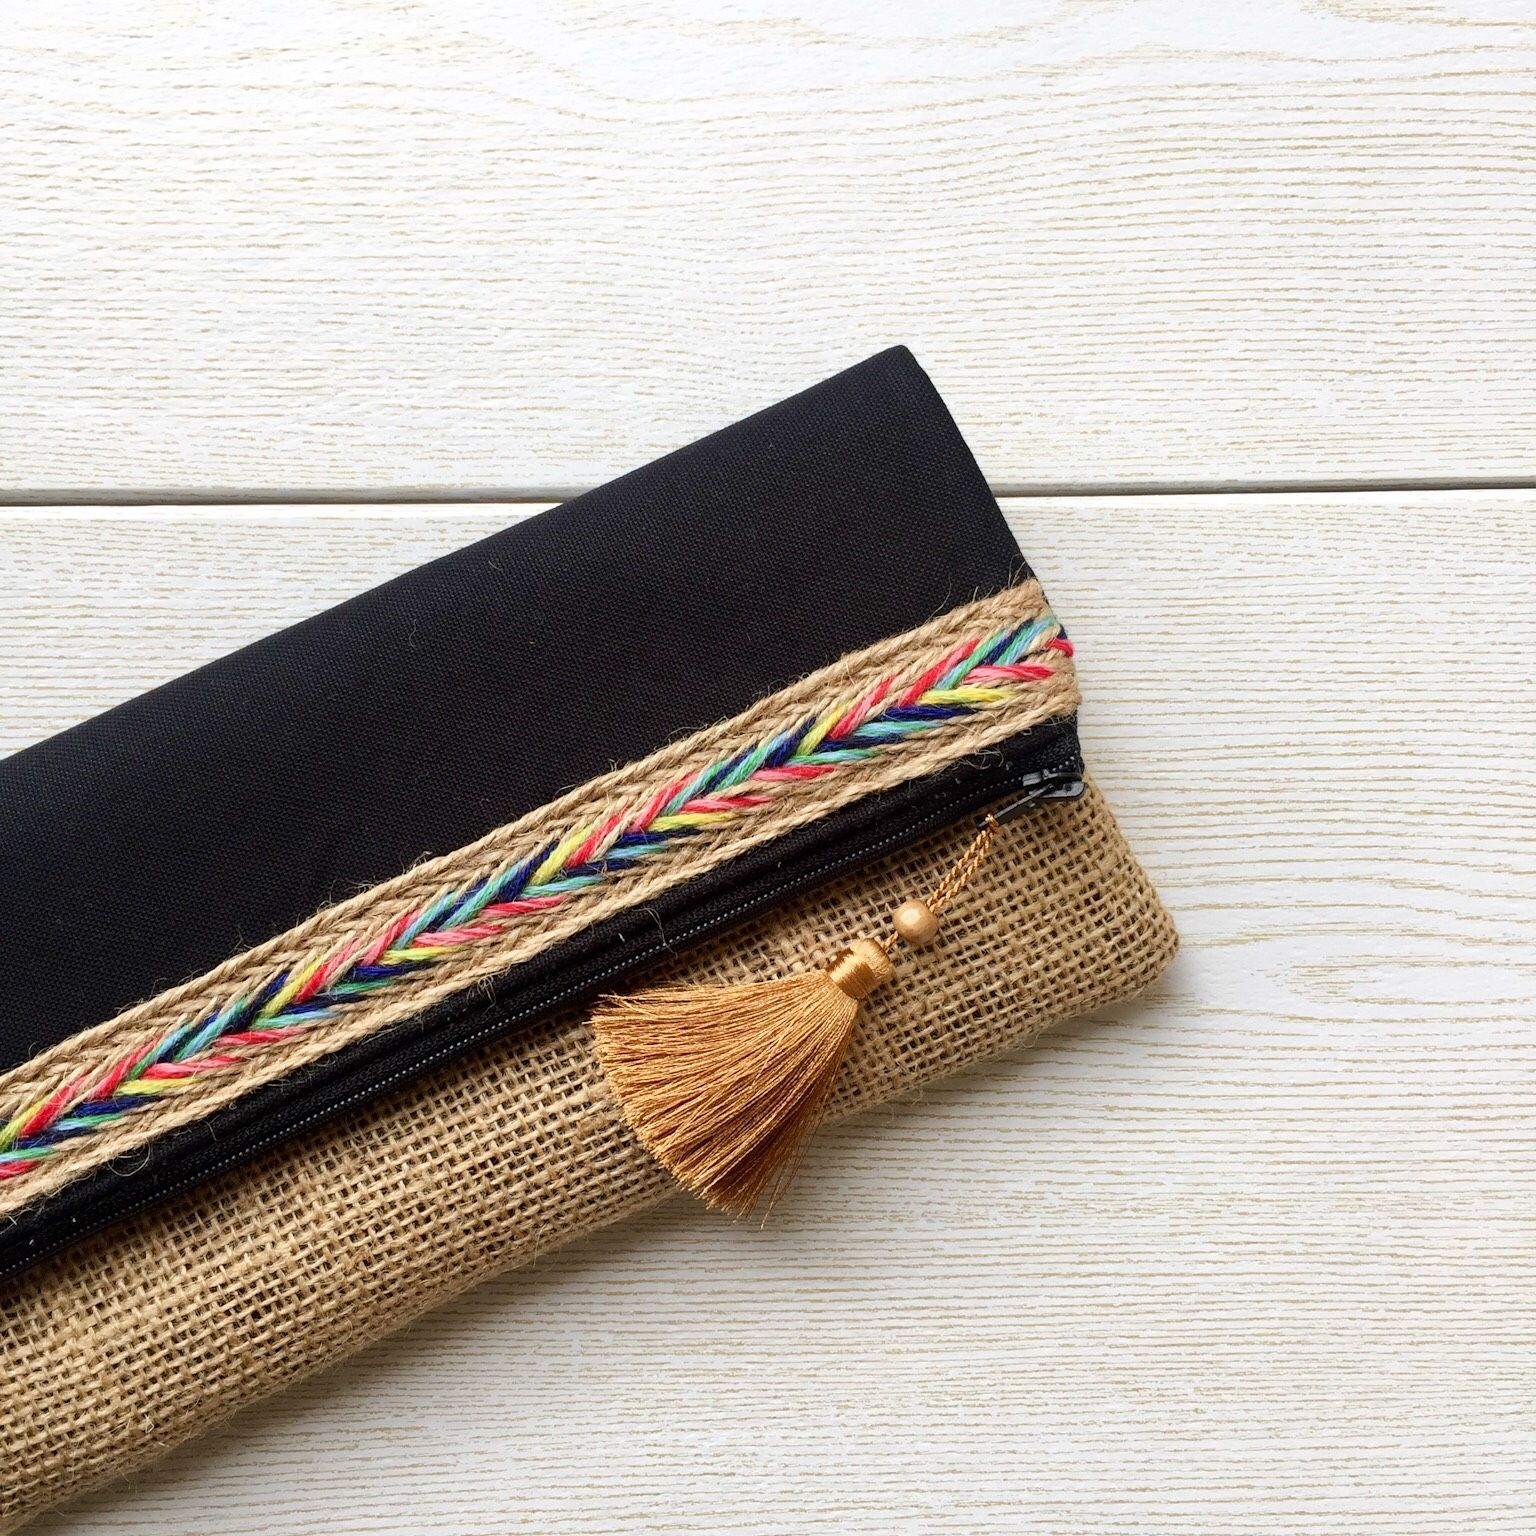 I made this one of a kind clutch from burlap material and